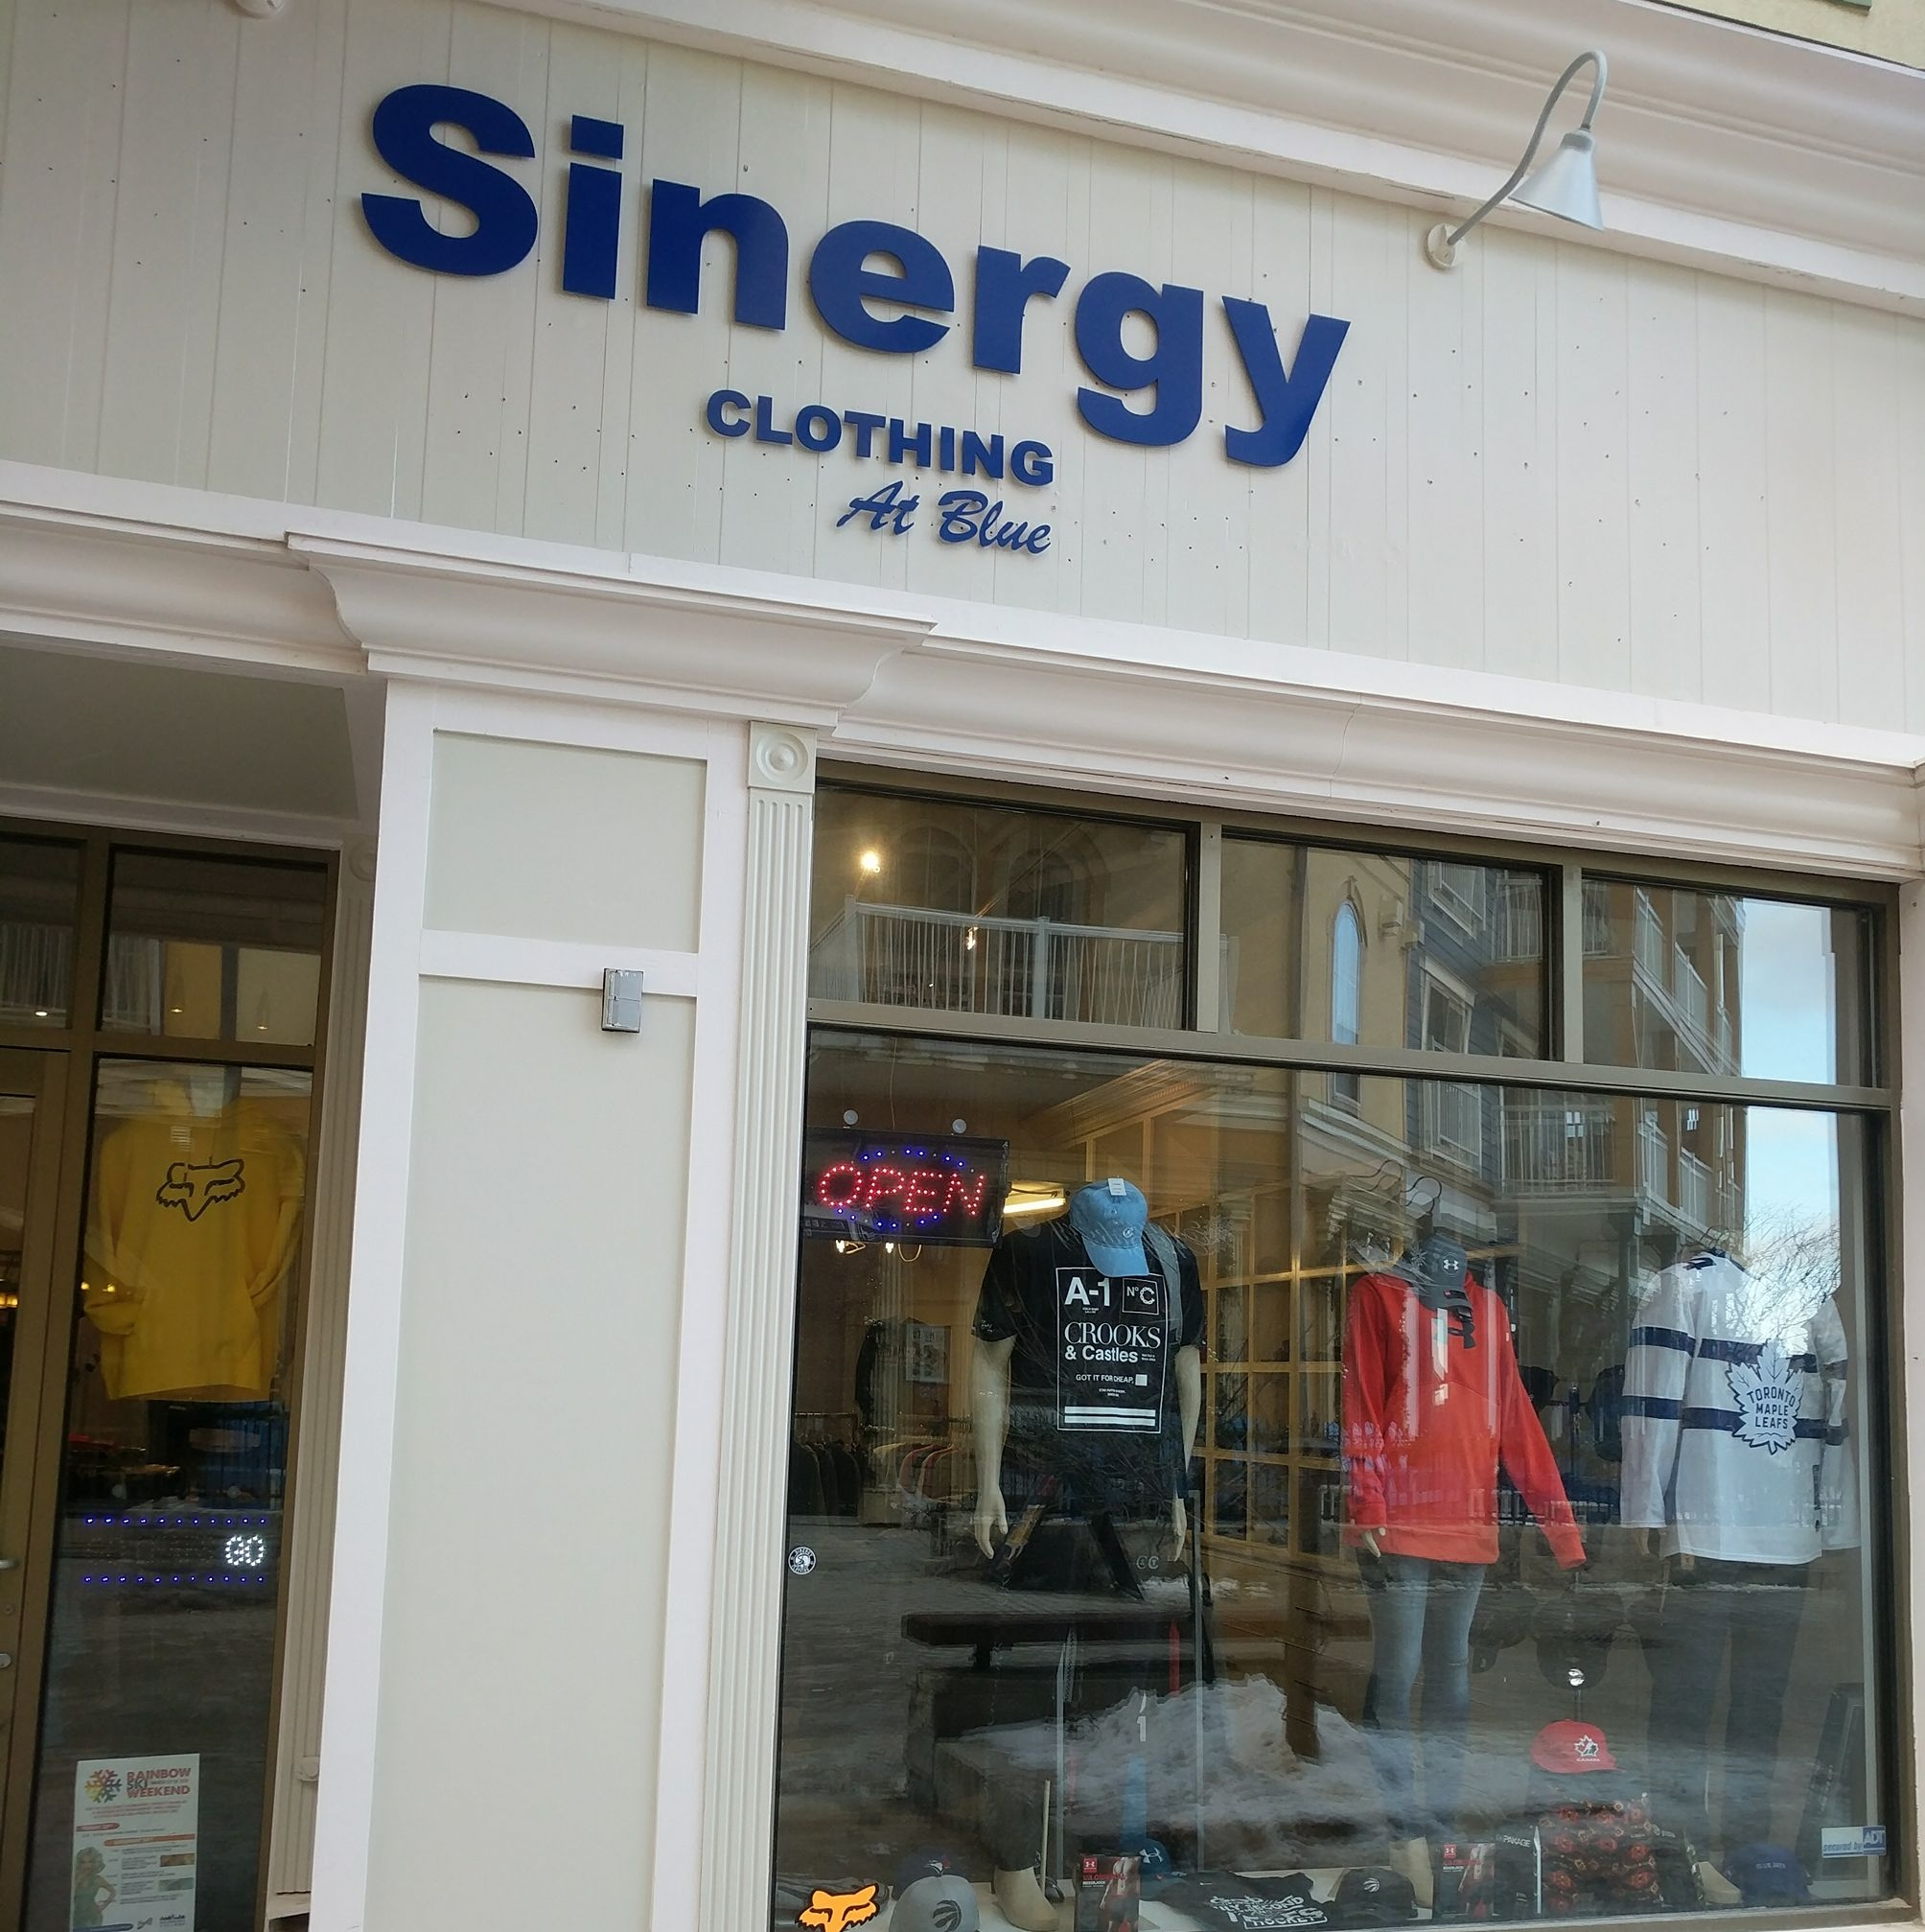 Sinergy Clothing at Blue